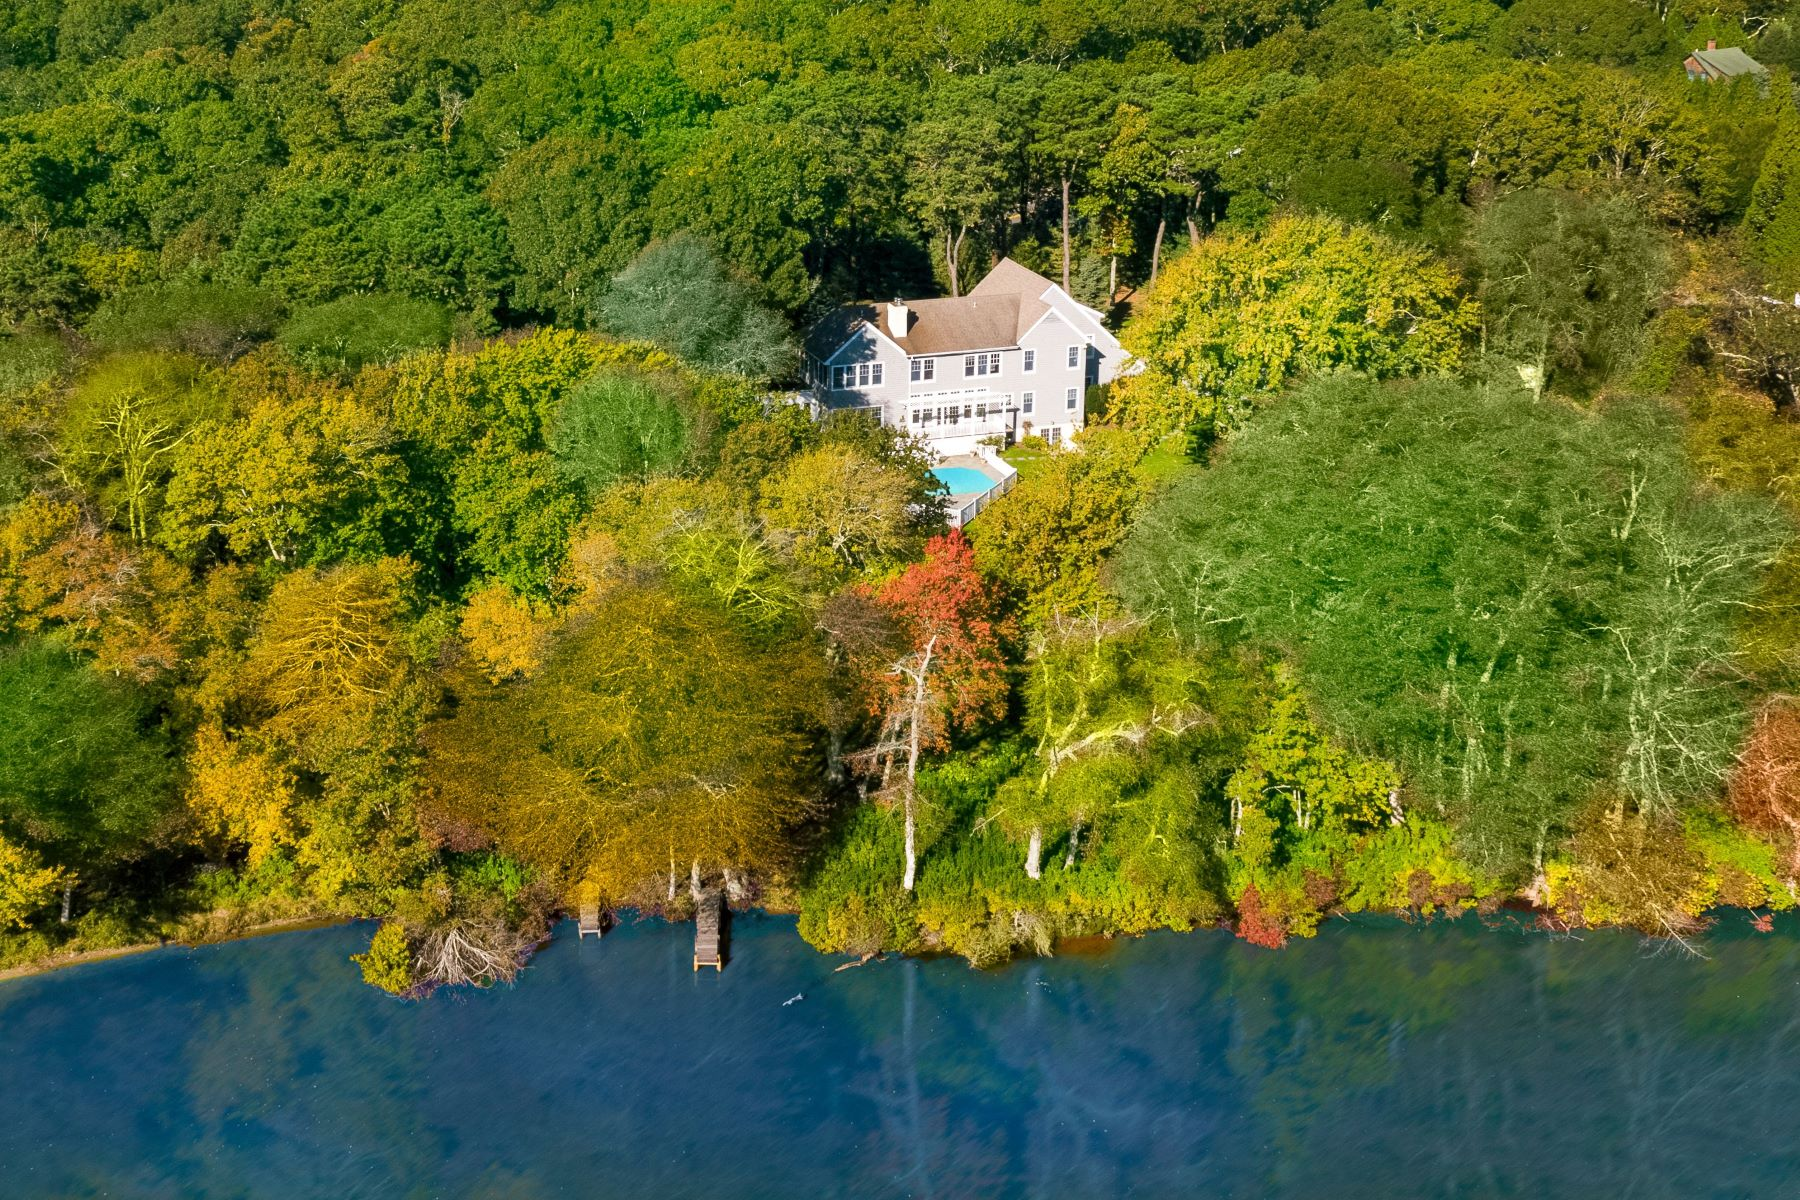 Single Family Homes for Sale at Waterfront In Water Mill 403 Head Of Pond Road Water Mill, New York 11976 United States